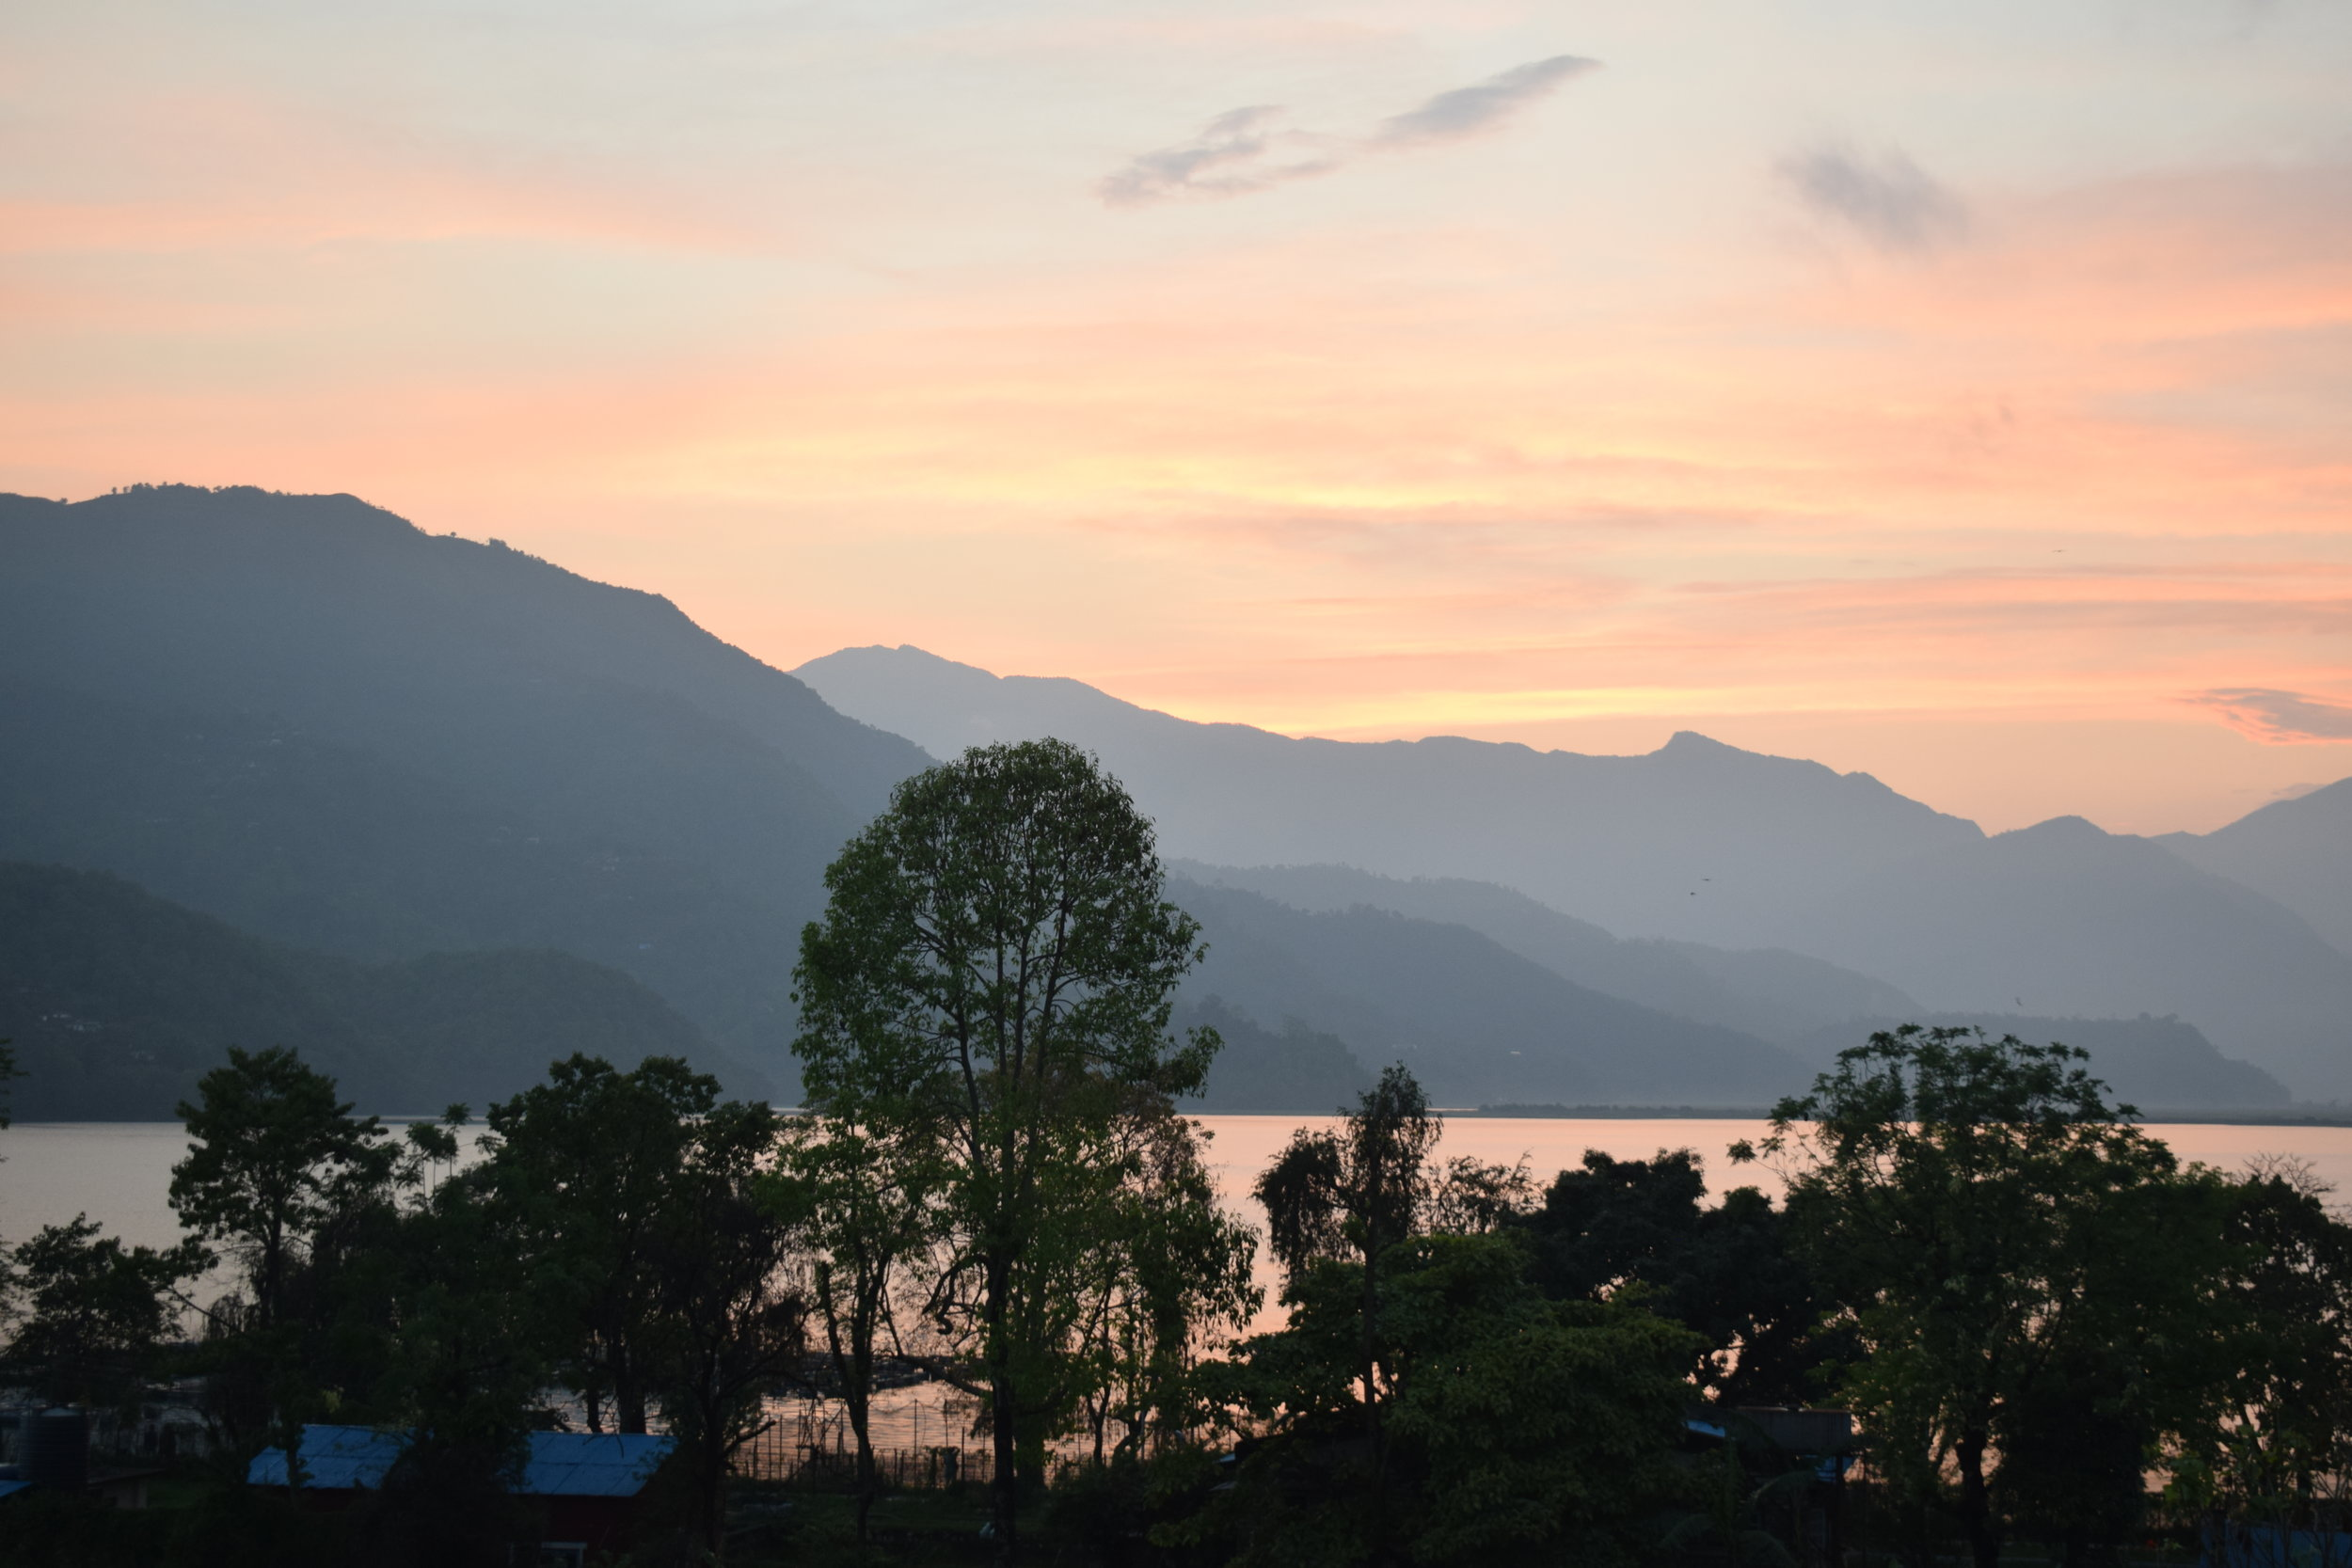 The view from OR2K over Phewa Lake at sunset.